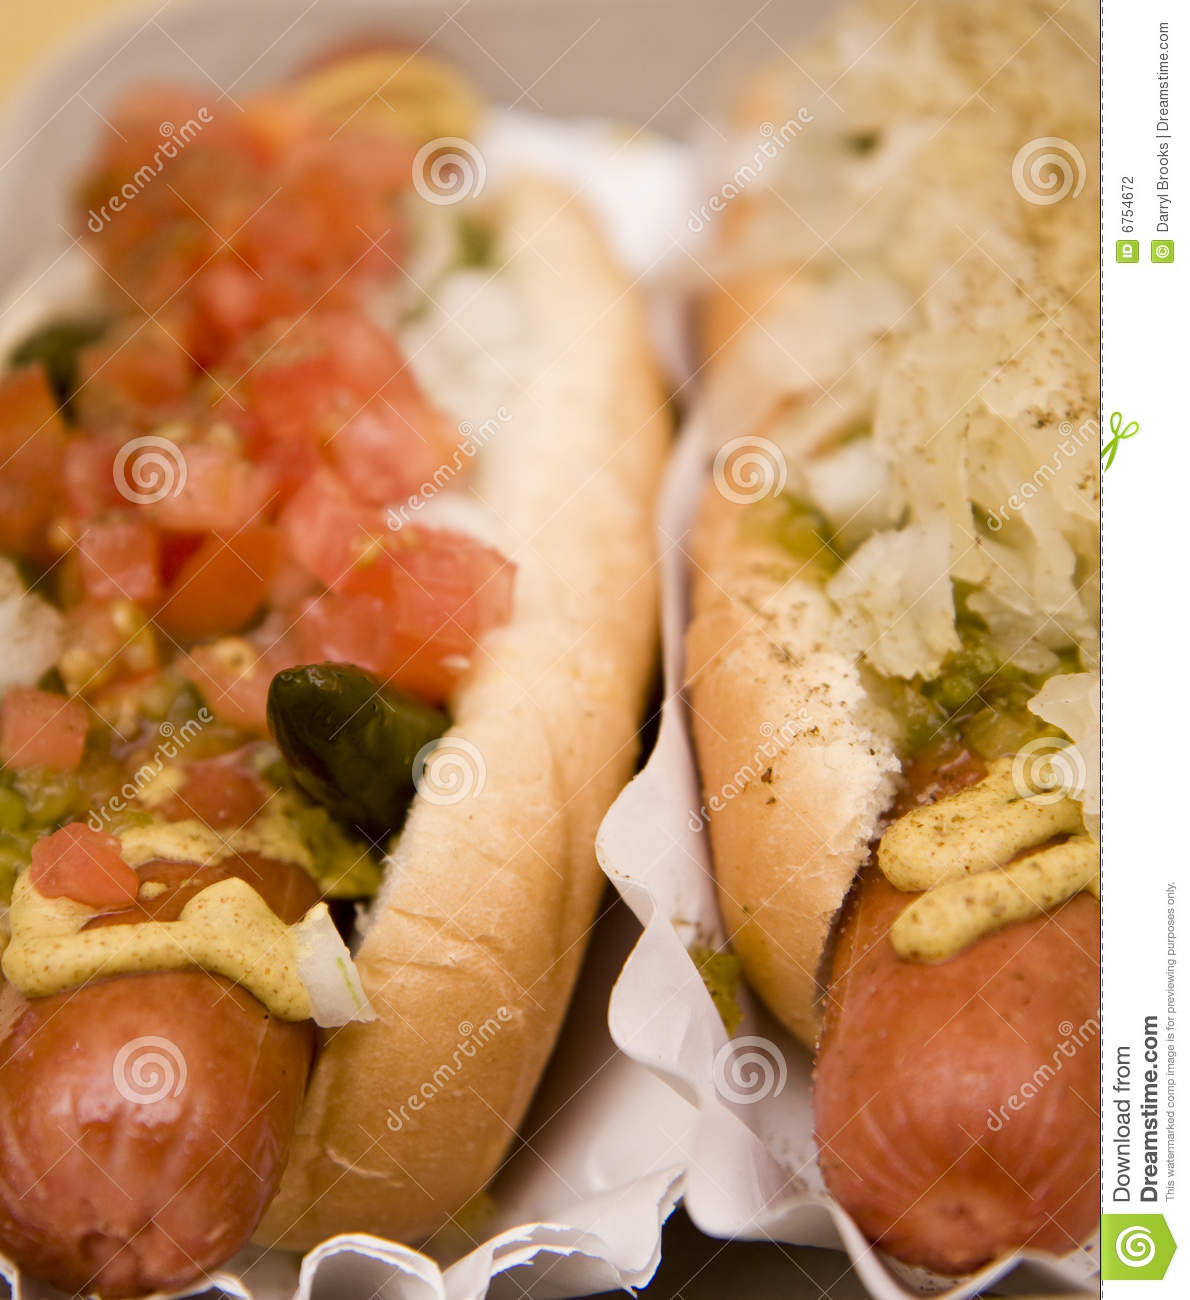 Two Hot Dogs  Two Hot Dogs Stock graphy Image